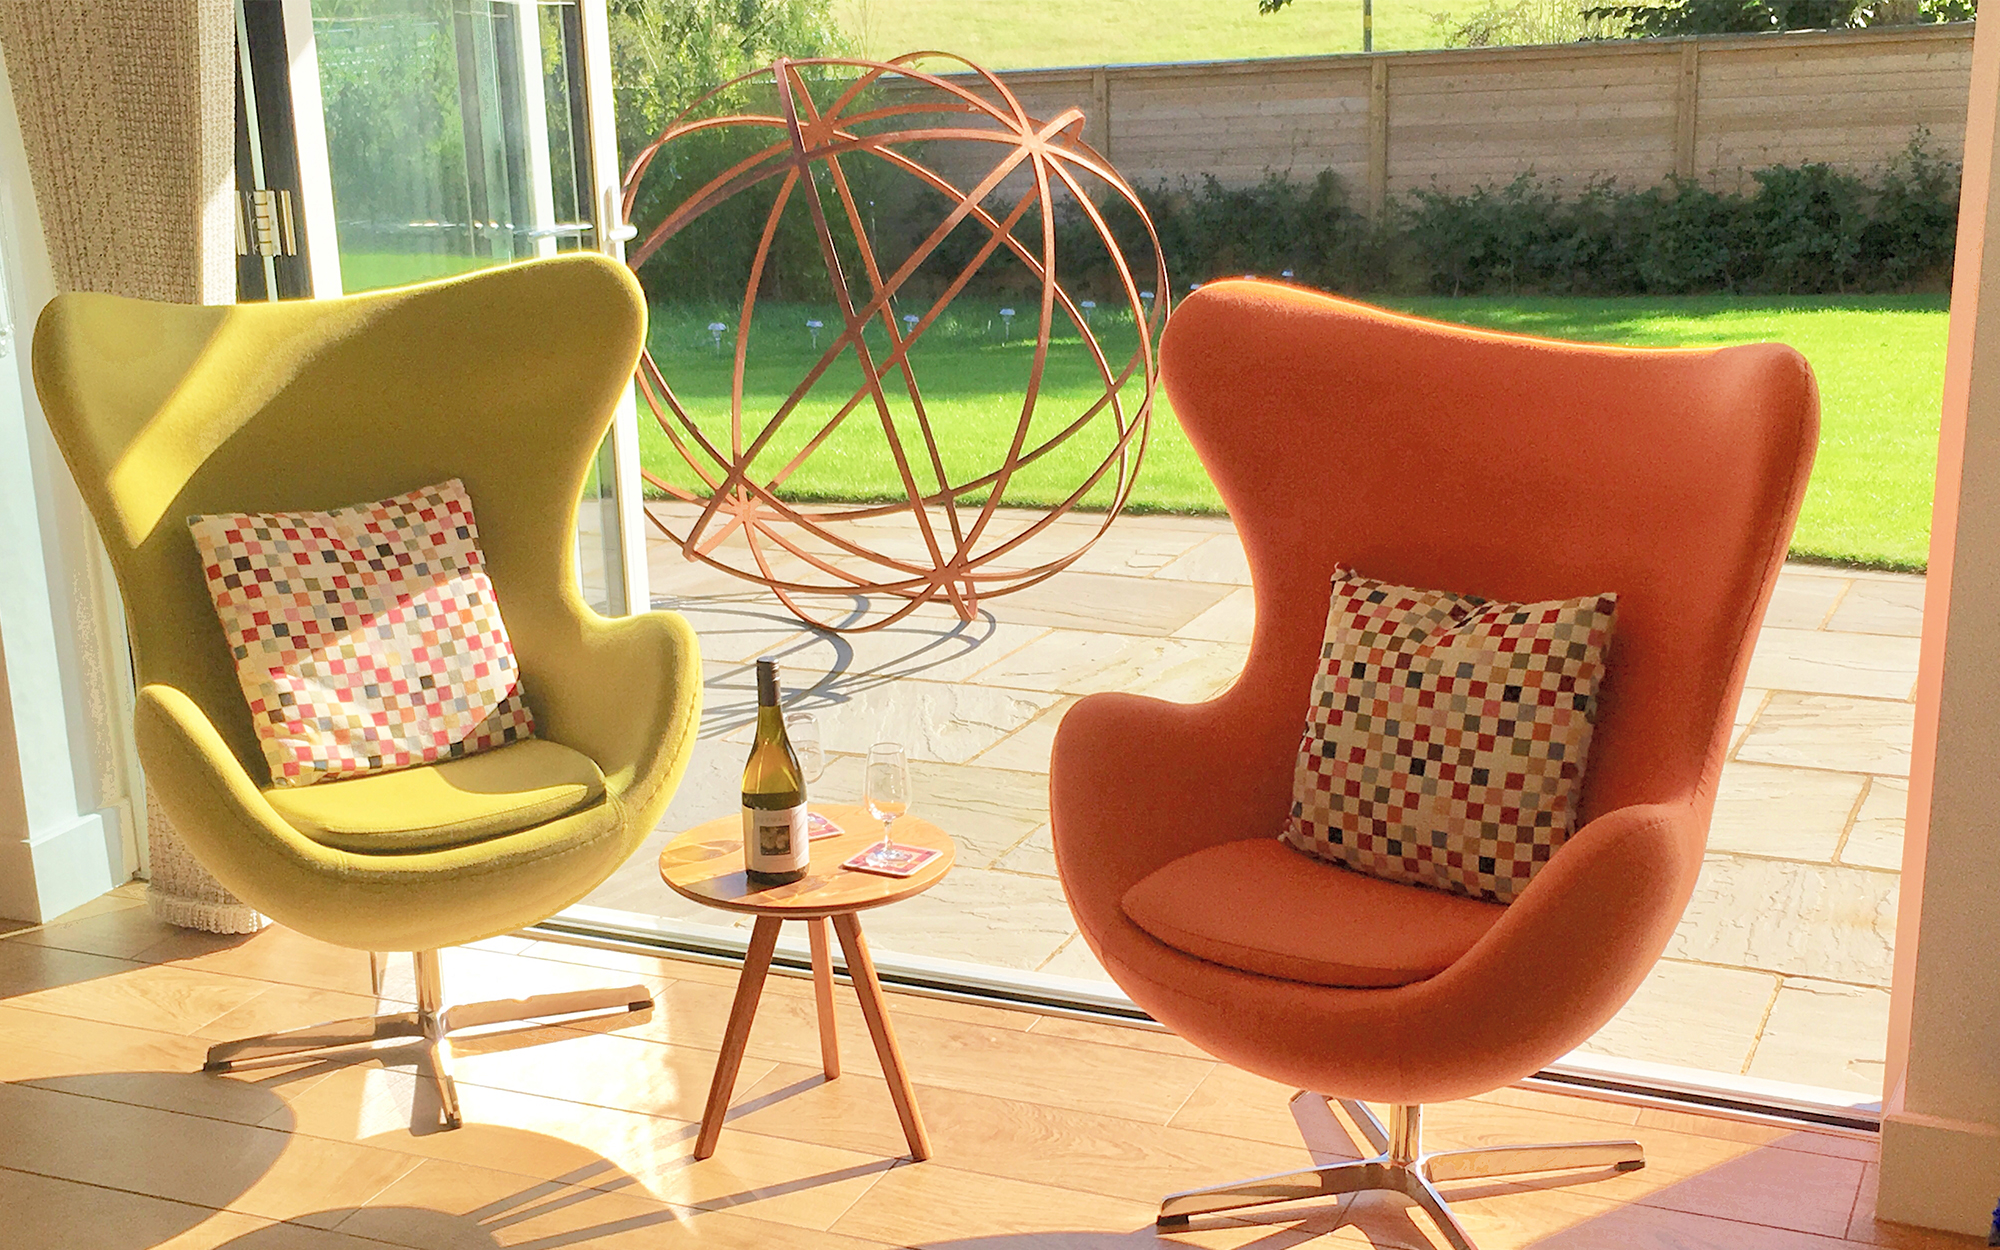 Olive Green & Orange Egg Chairs in a Living Space